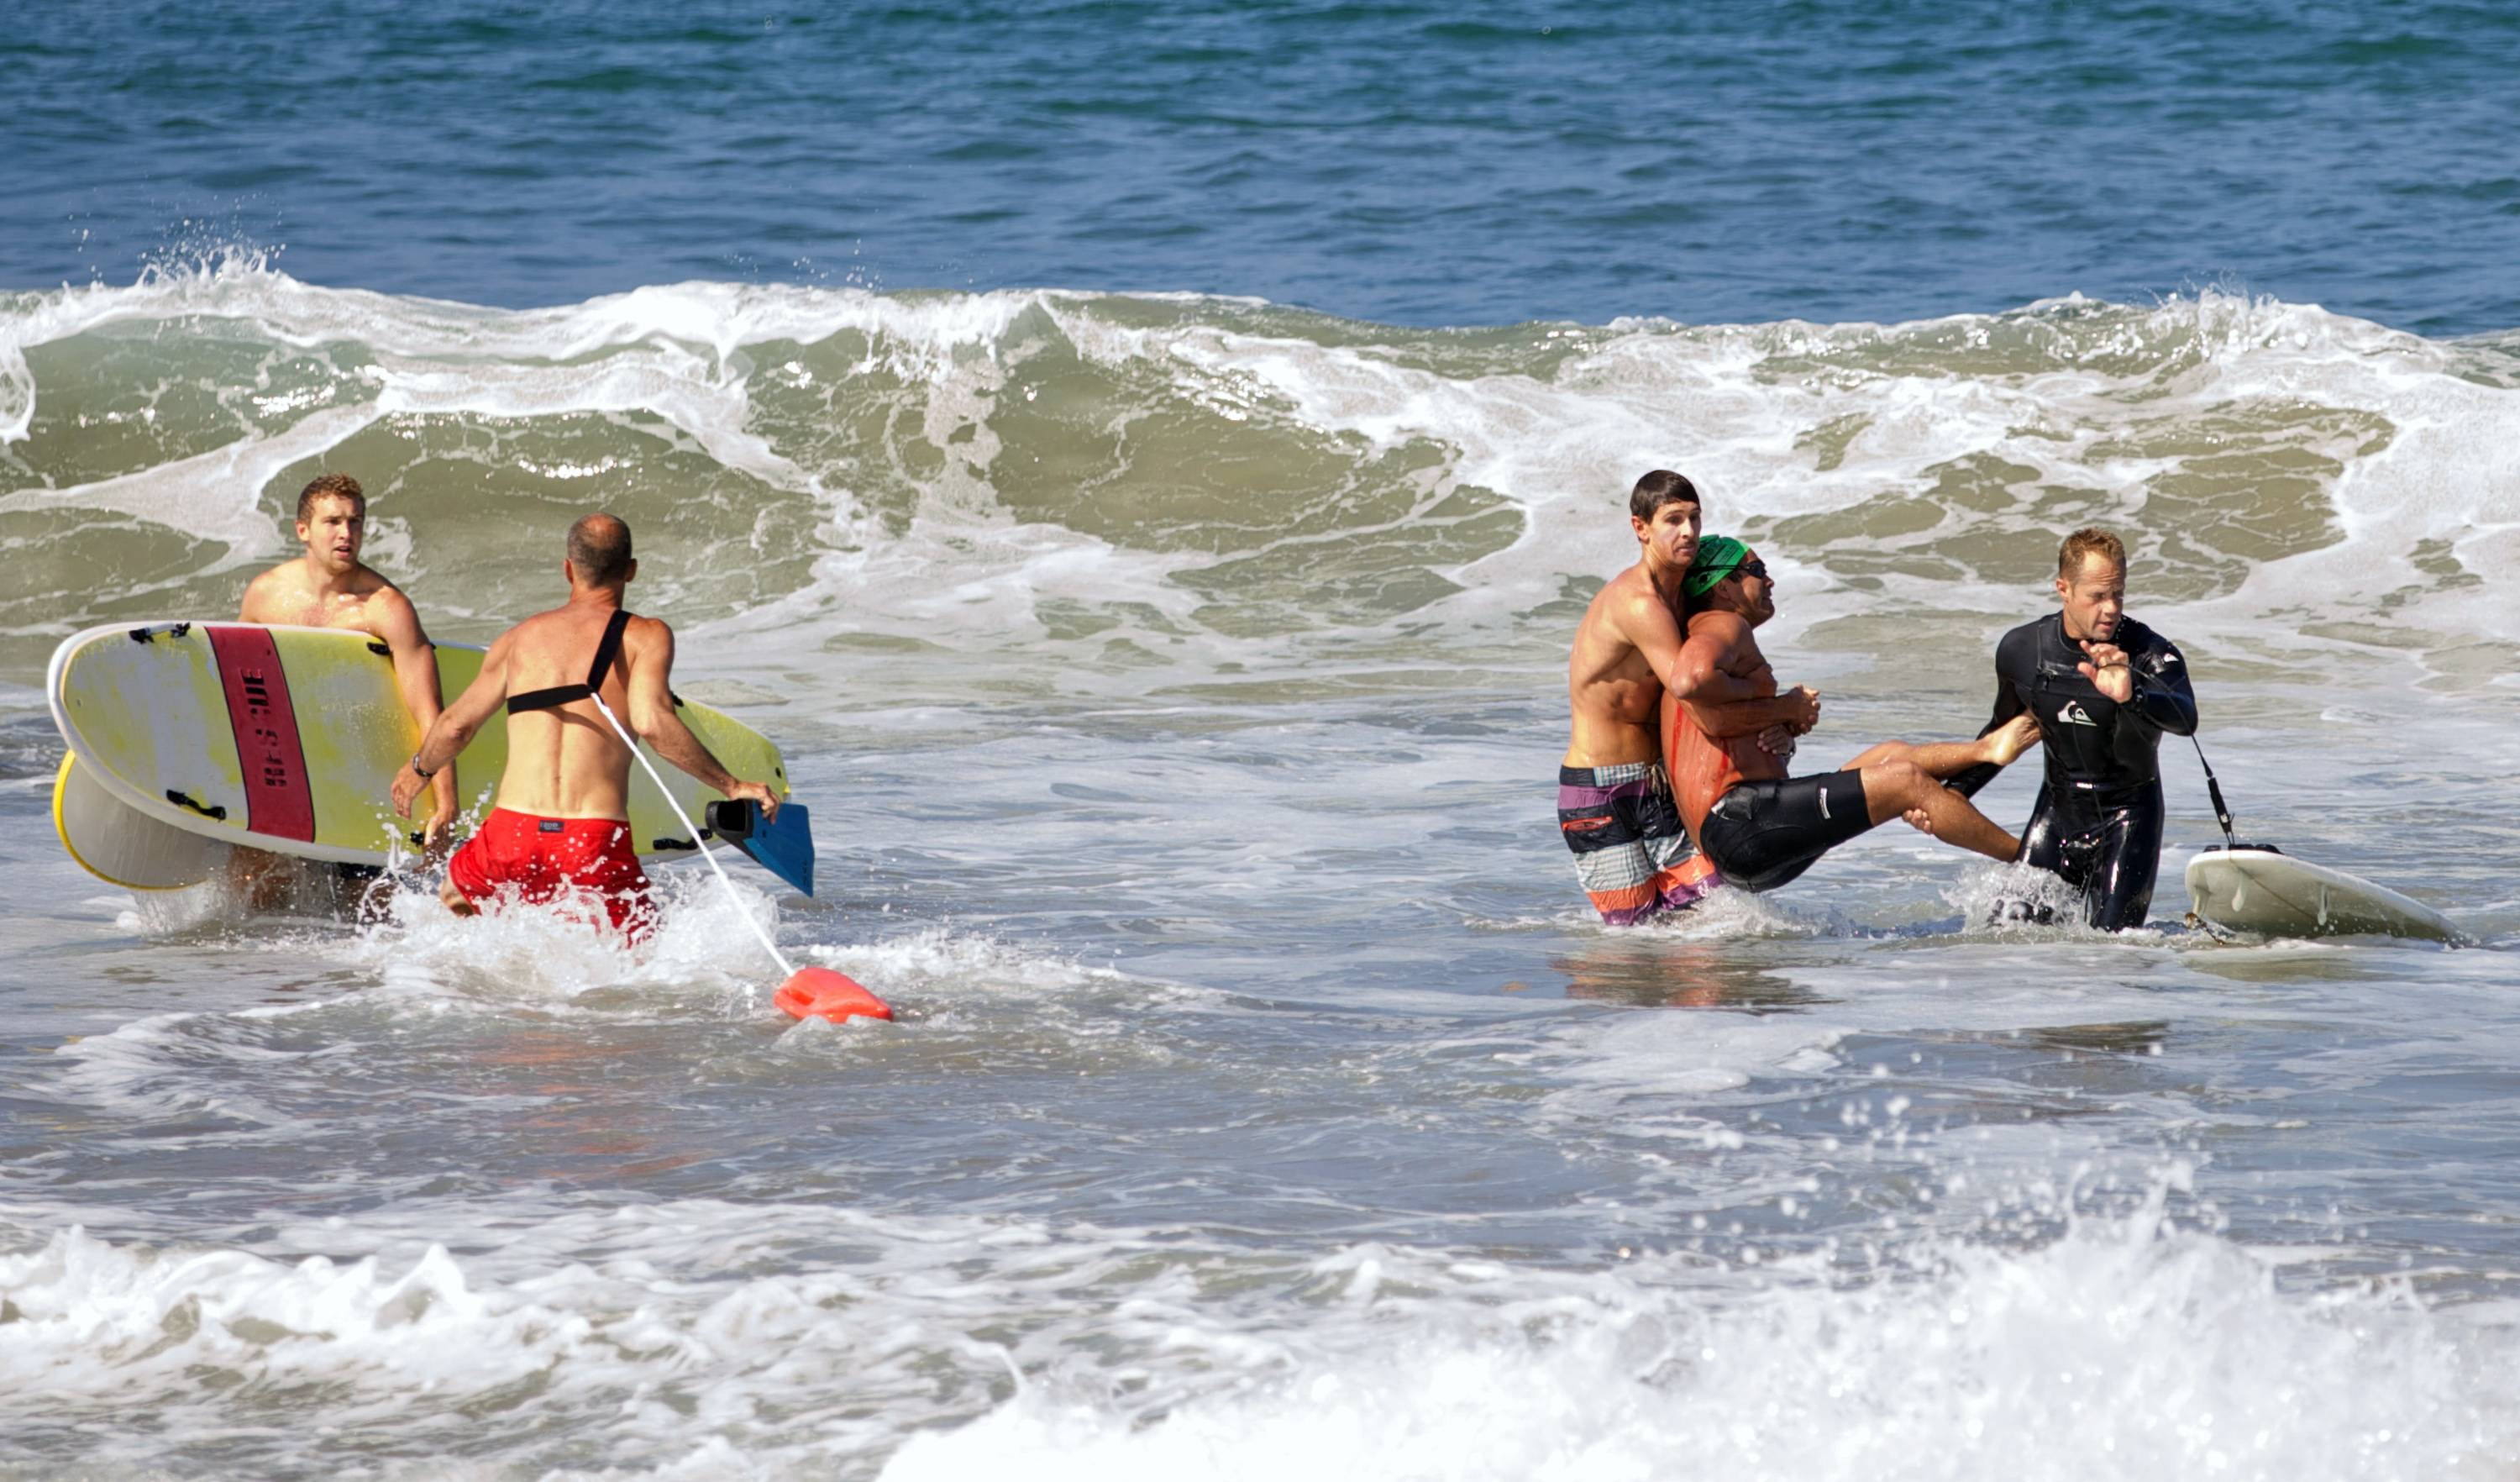 Two men carry Steven Robles, second from right, after he was bitten by a great white shark, as lifeguards close in at left in the ocean off Southern California's Manhattan Beach Saturday.